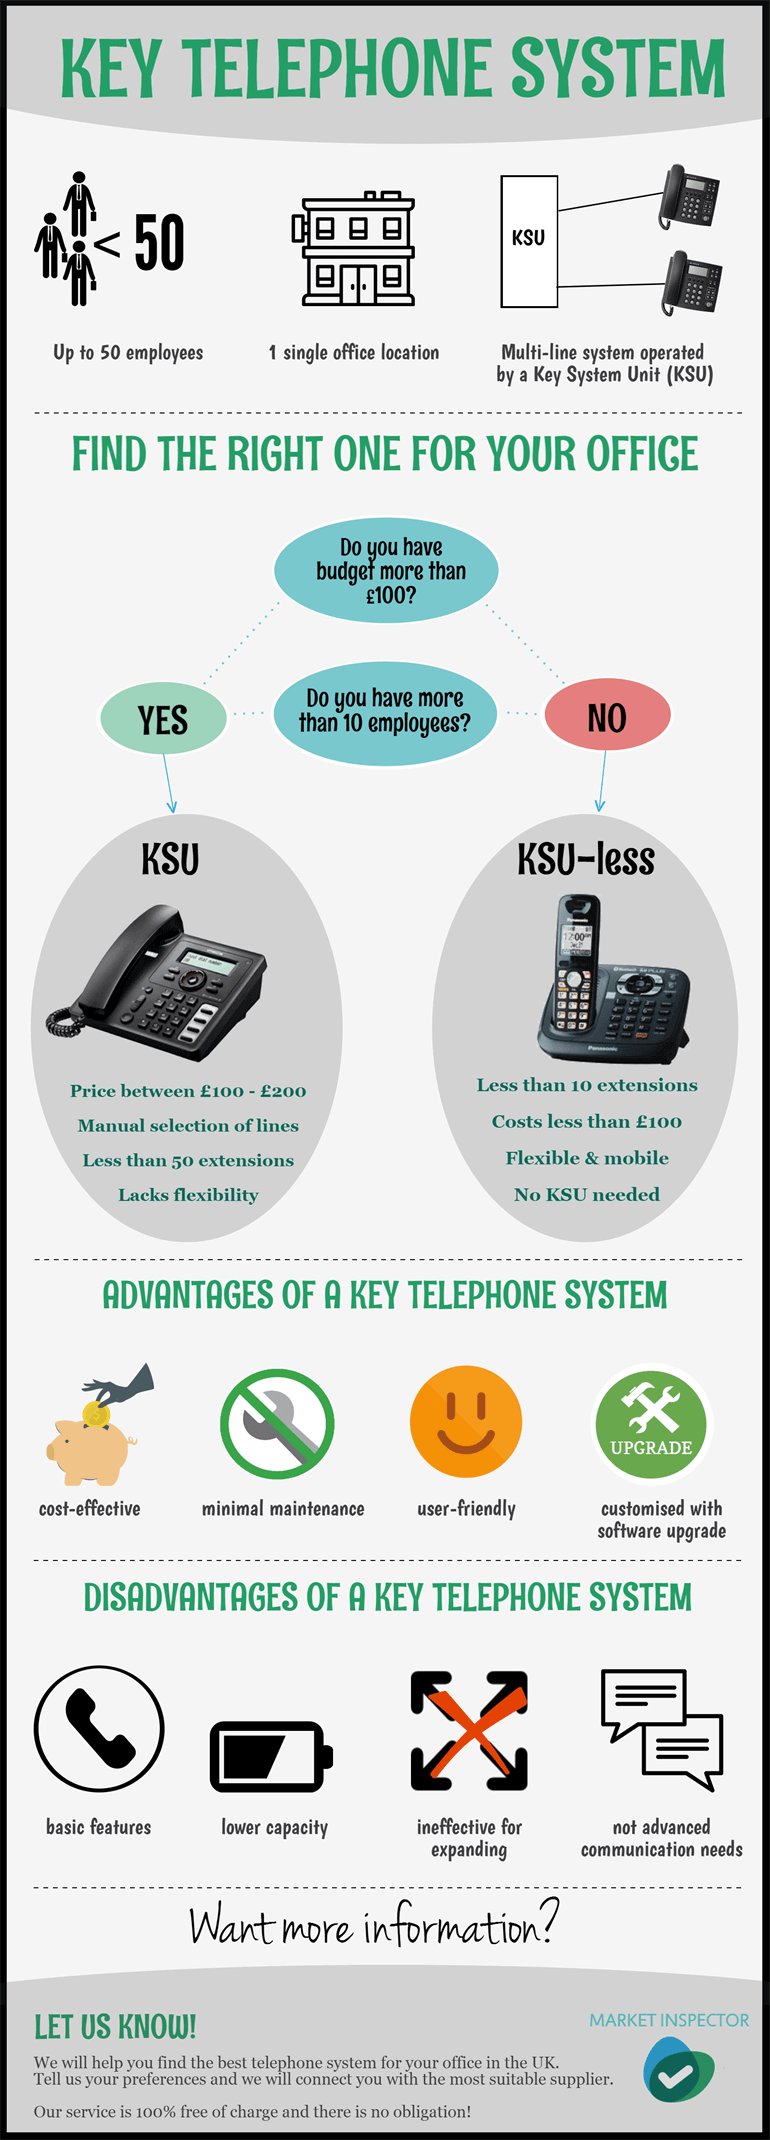 Key telephone system in the uk